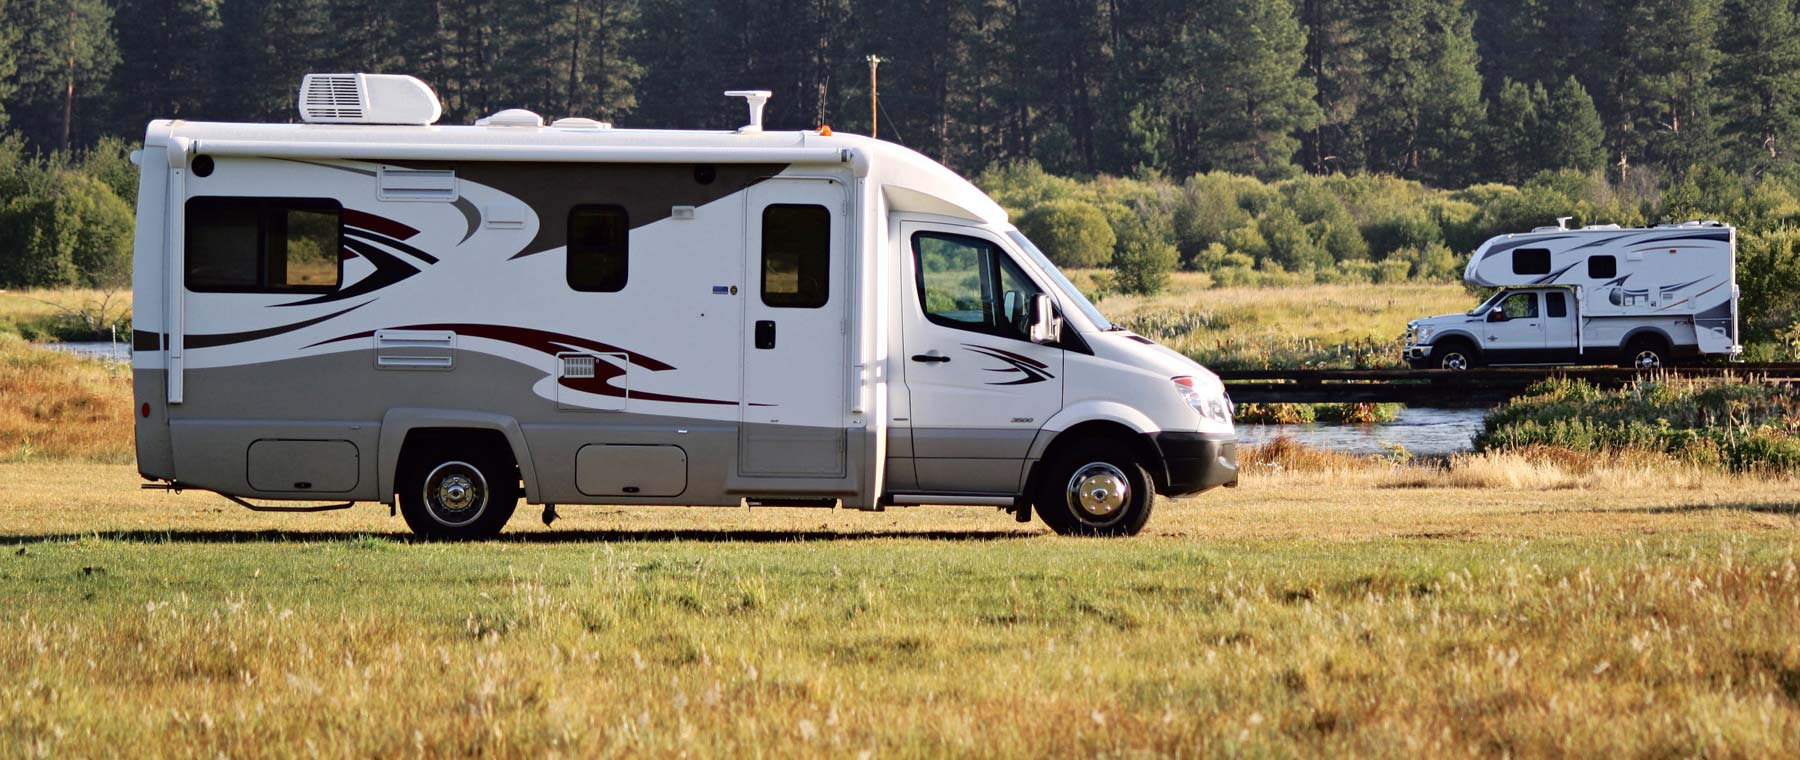 Rv Types Motorhomes Travel Trailers Campers And Park Models Go Rving Canada